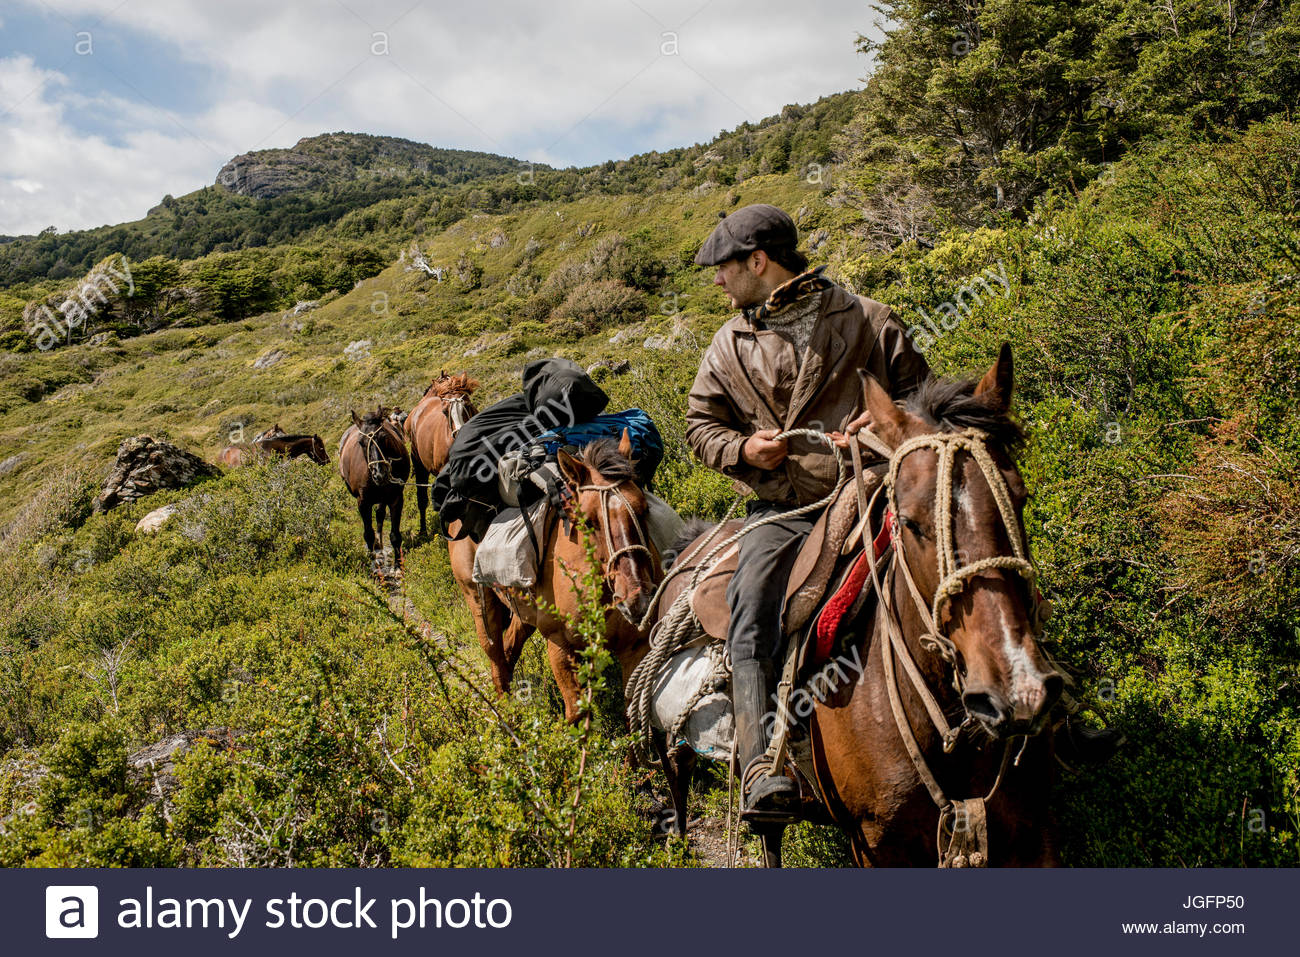 A bagualero, or cowboy who captures feral livestock, brings horses to a ranch. - Stock Image